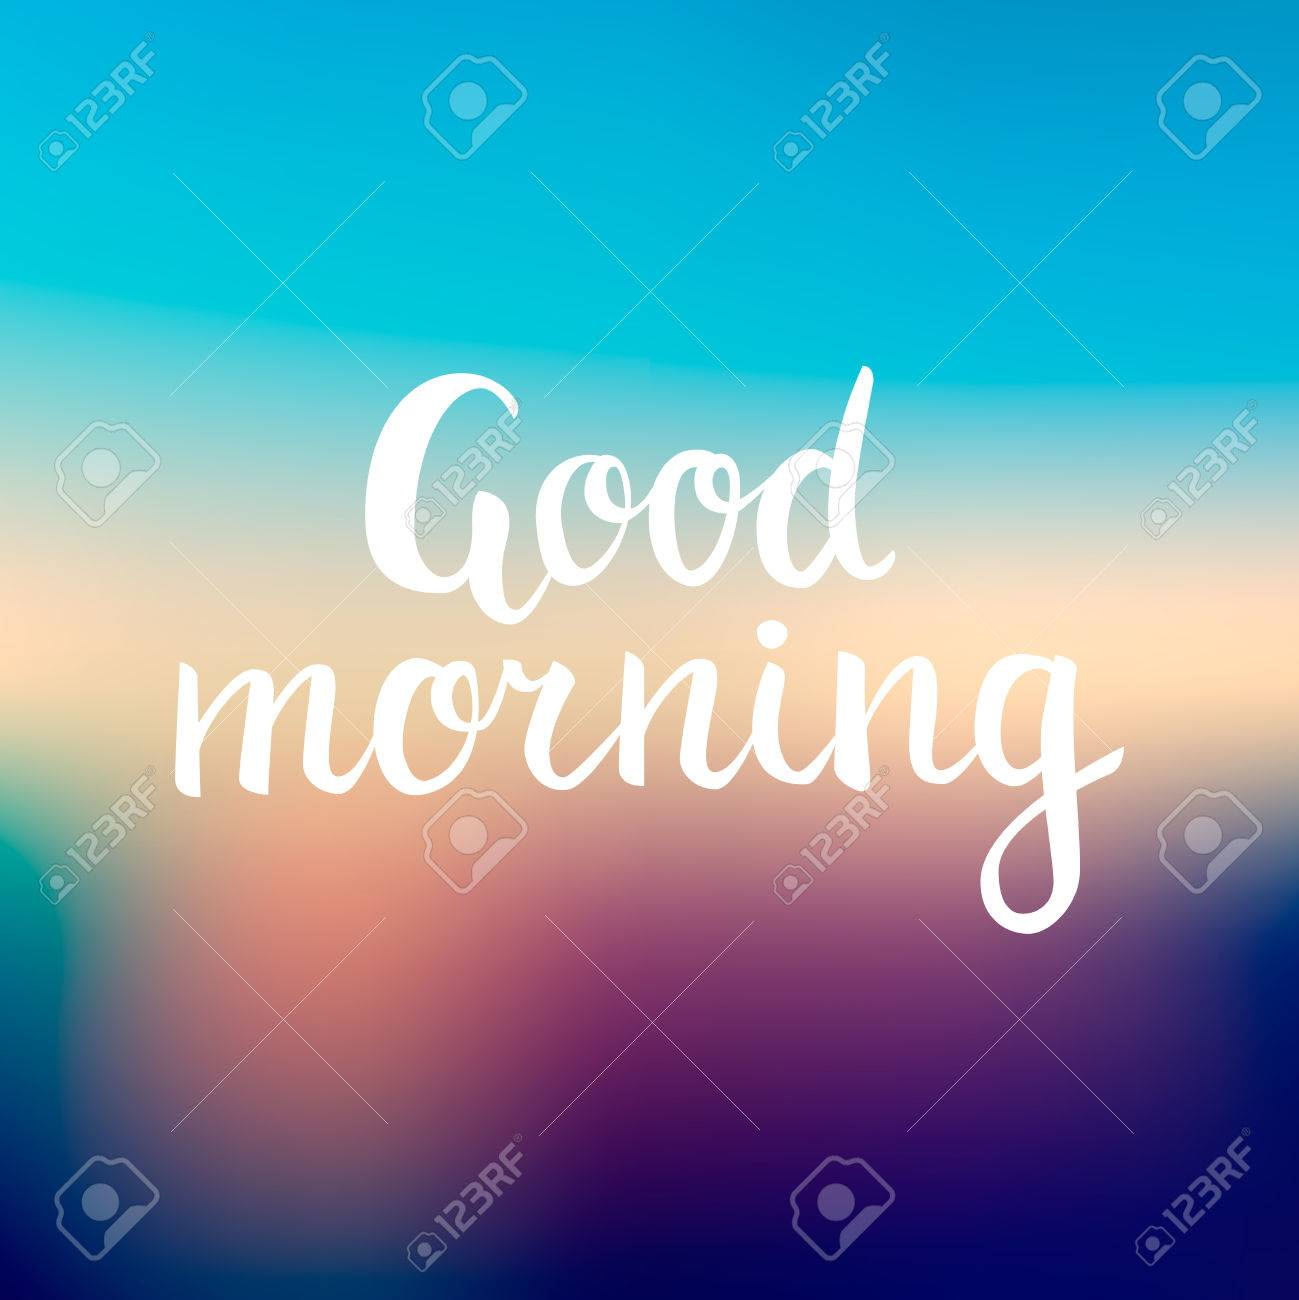 Good Morning Lettering Beautiful Good Morning Text On Mesh Gradient